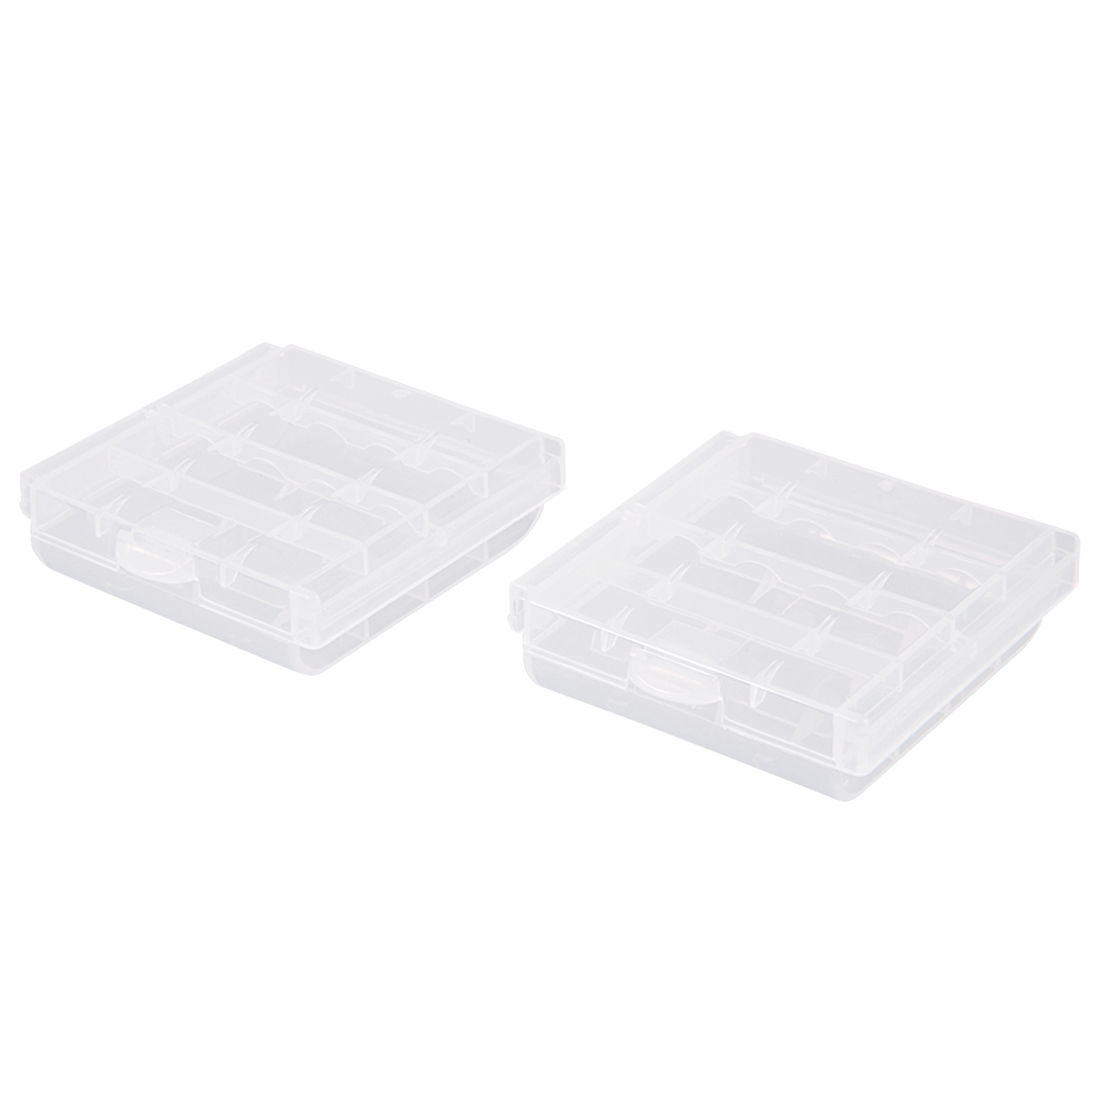 2 Pcs Battery Storage Cases Holder Clear 4AA Battery Capacity